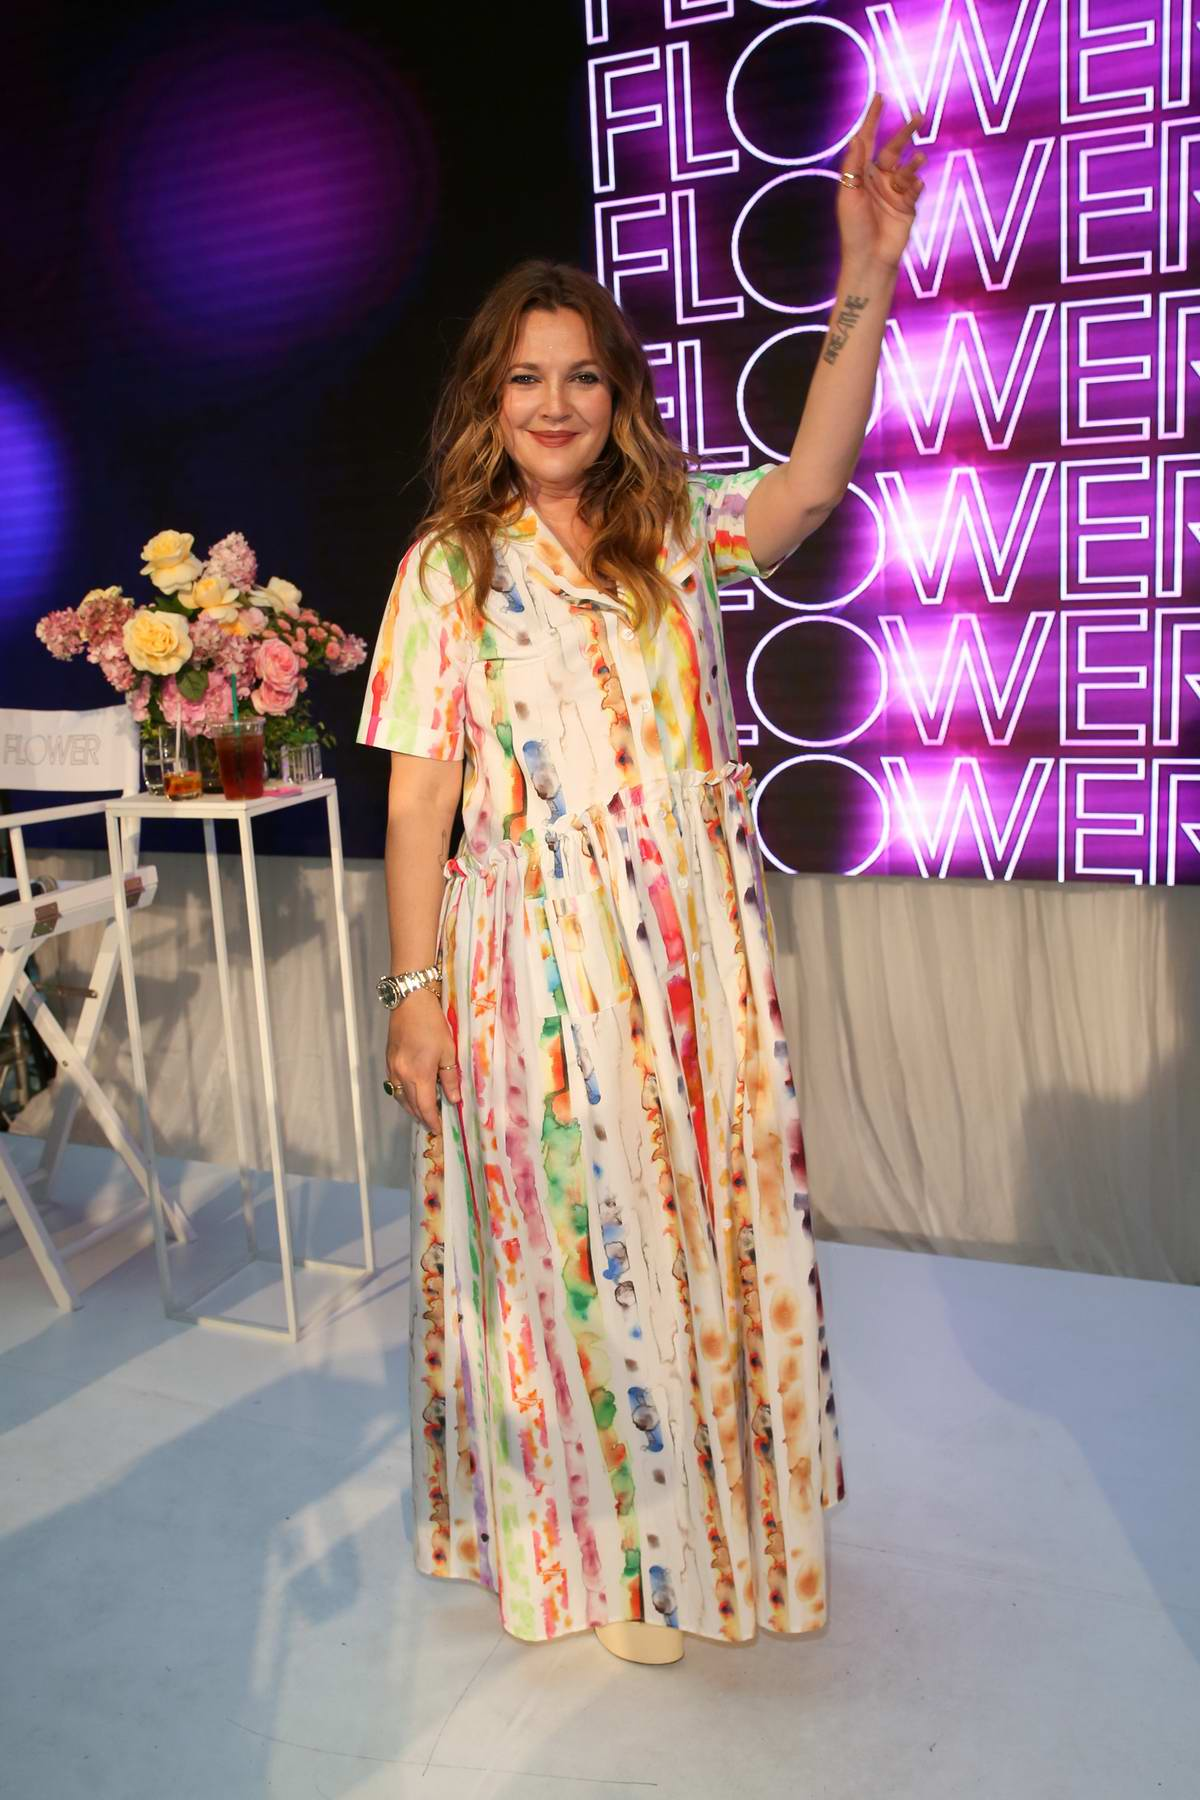 Drew Barrymore at the FLOWER Beauty Launch Event at Westfield Parramatta in Sydney, Australia